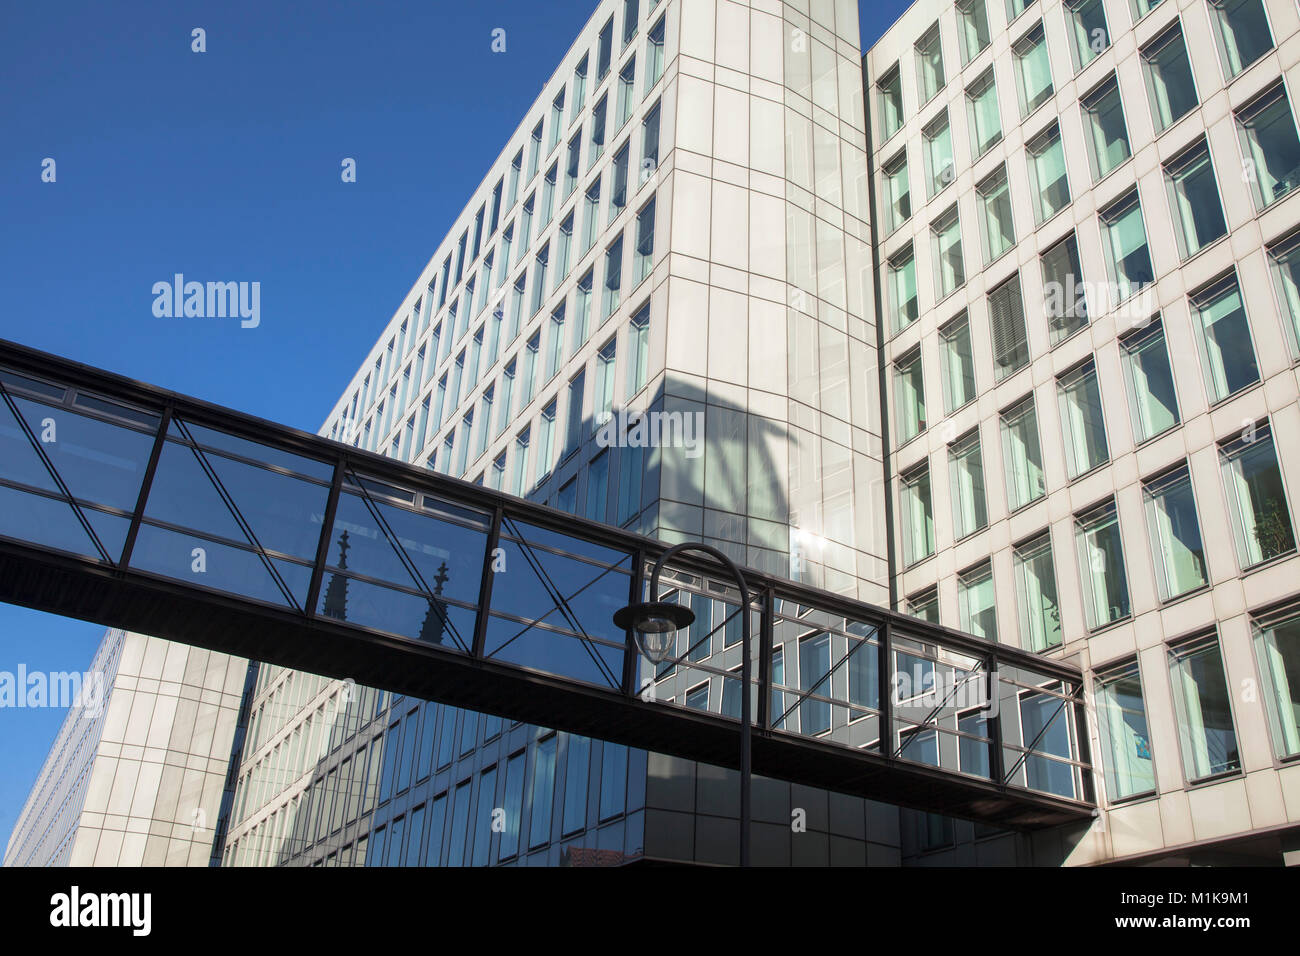 Germany, Cologne, the building Vierscheibenhaus of the Westdeutscher Rundfunk or West German Broadcasting Cologne, Stock Photo